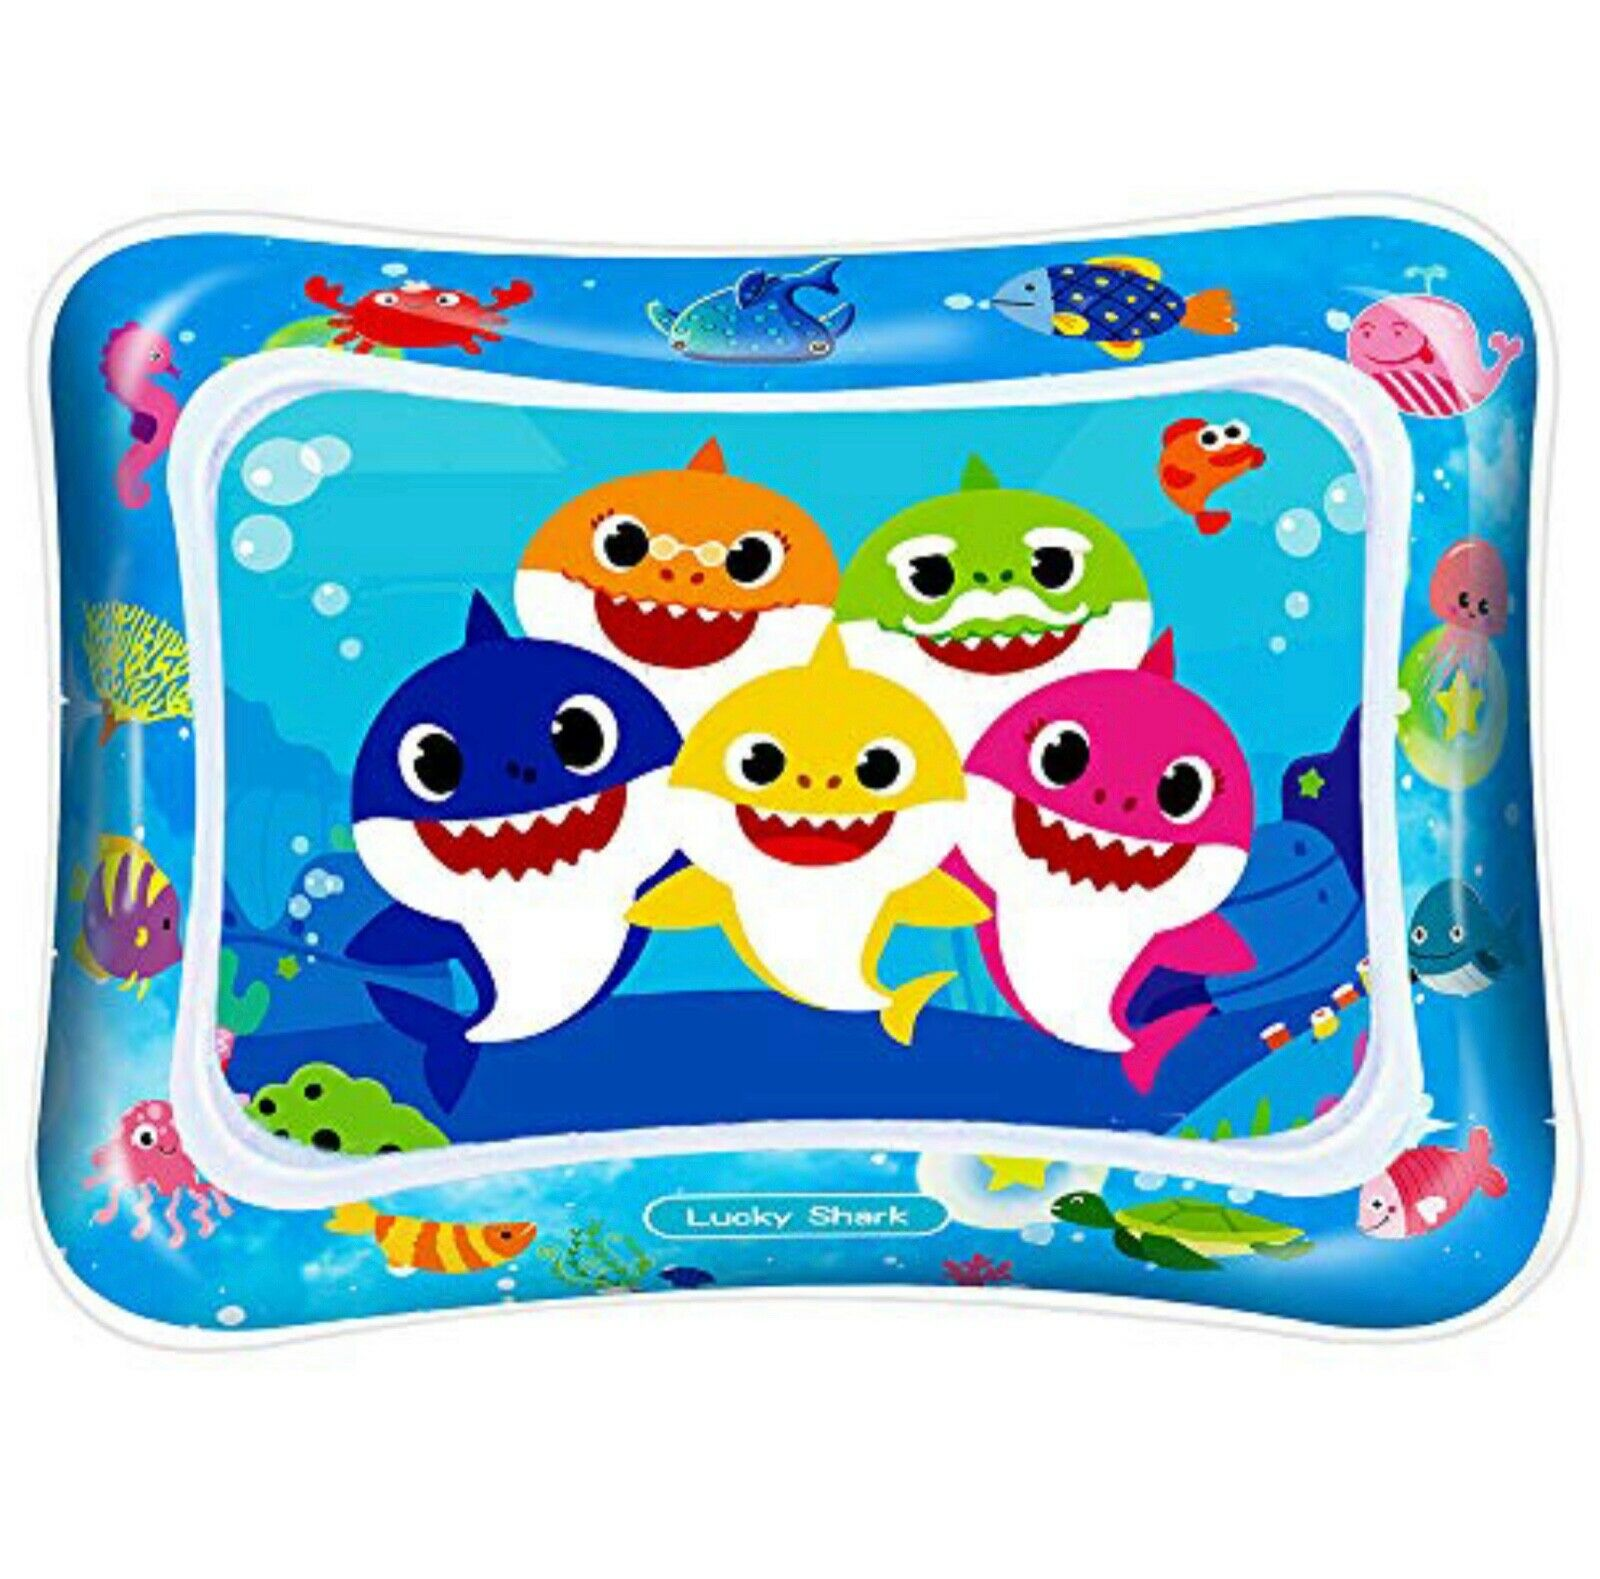 Baby Water Play Mat Large Inflatable, Perfect Tummy Time - $14.99